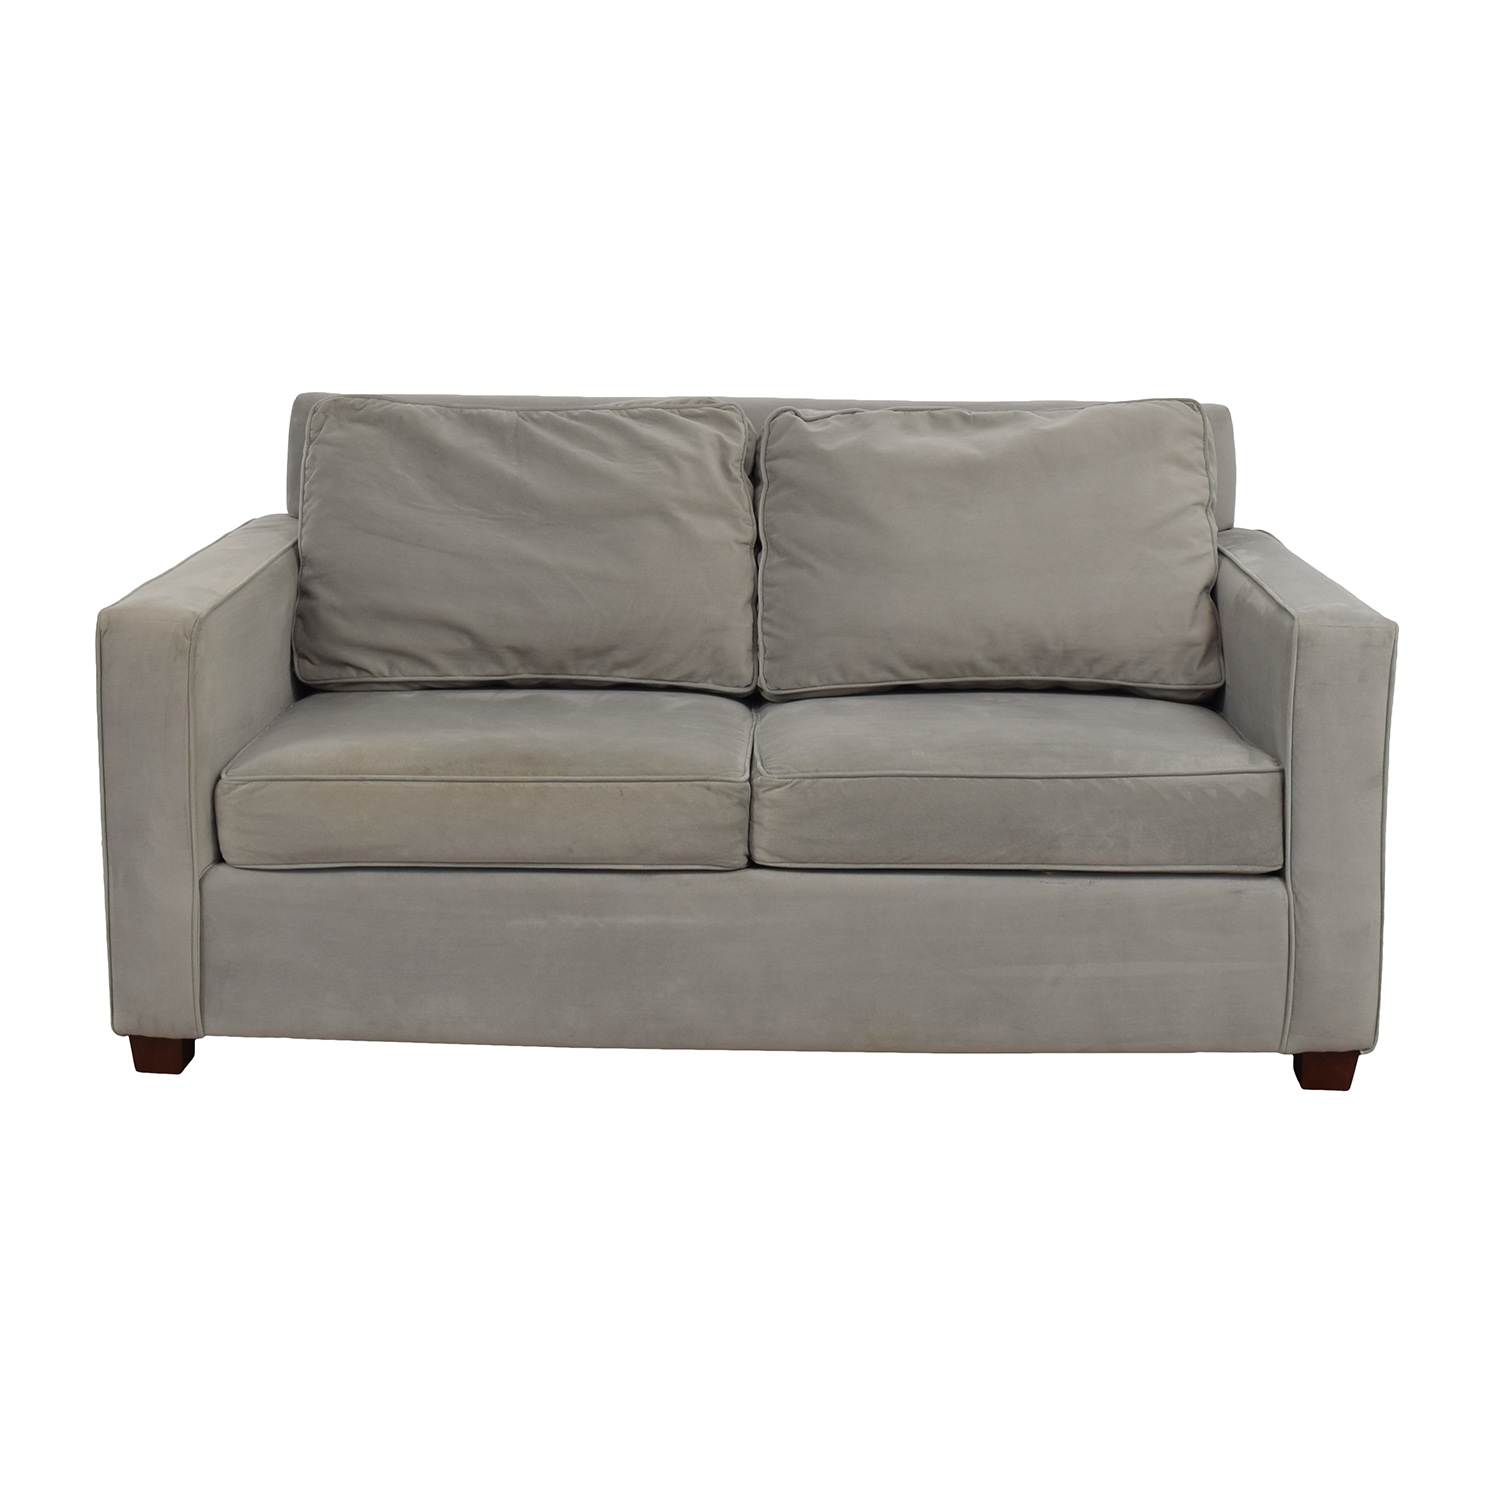 West Elm West Elm Henry Gray Loveseat for sale